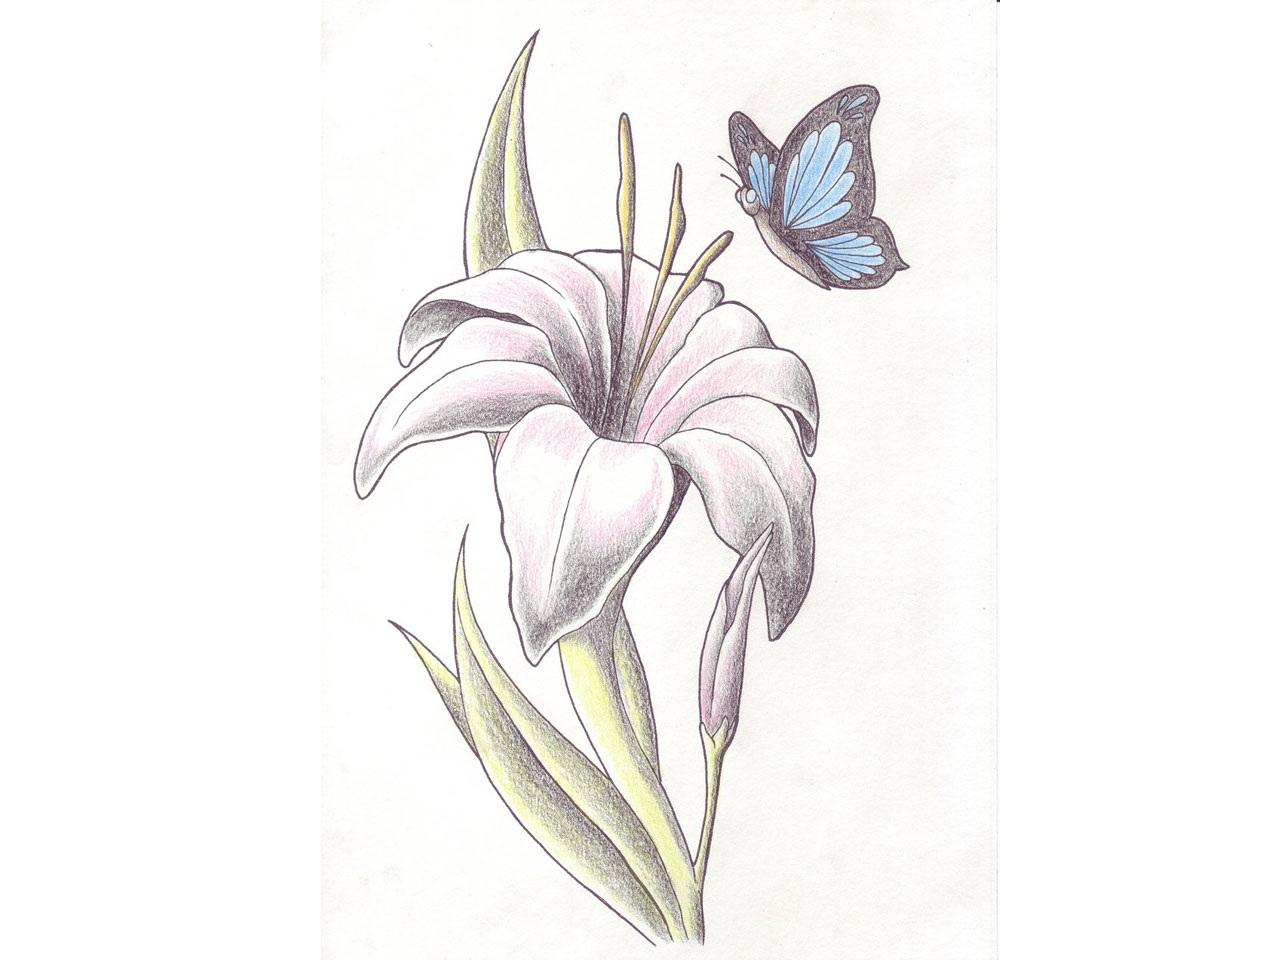 Lily Tattoos Designs Ideas and Meaning